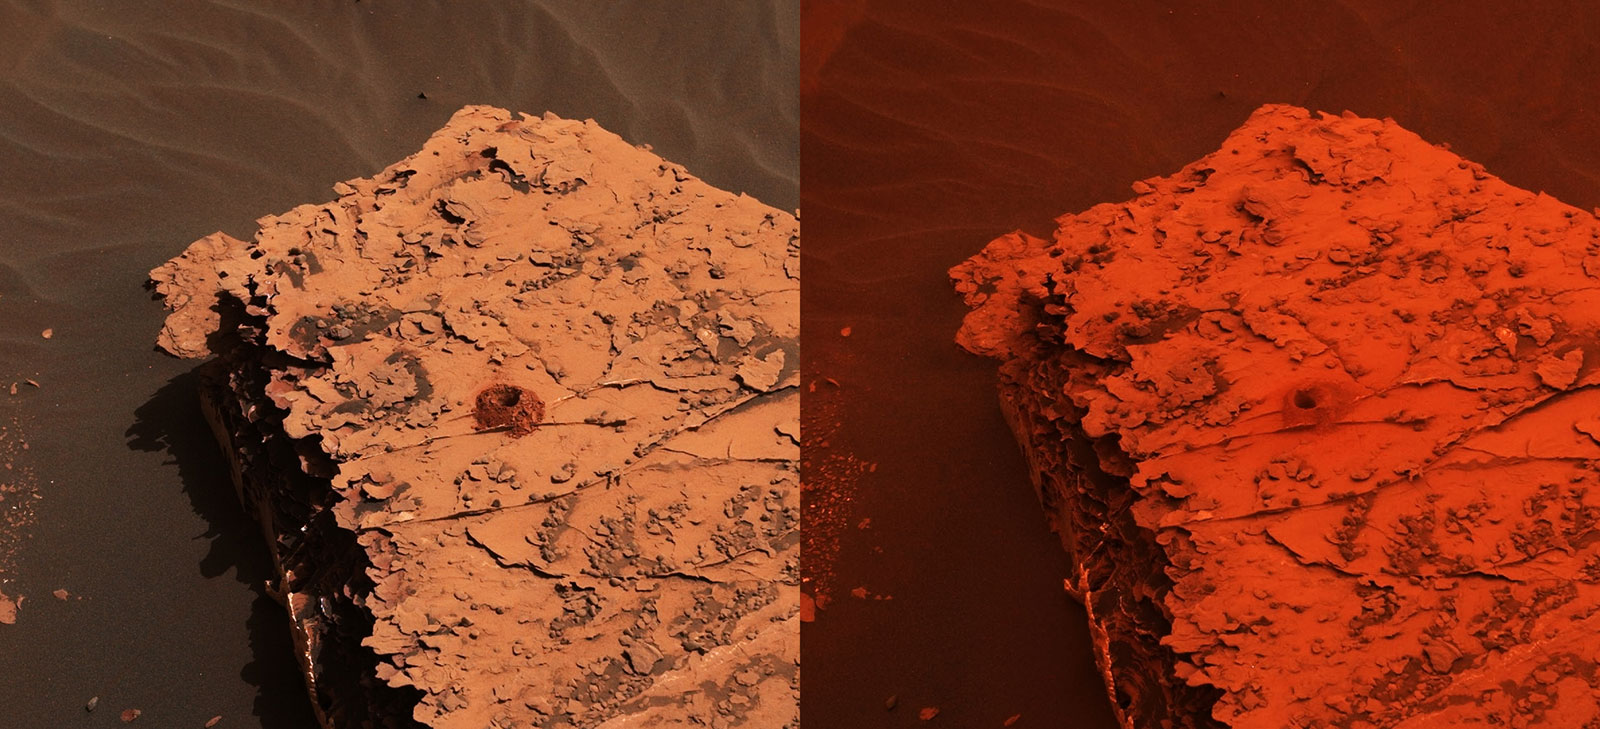 change in the color of light illuminating the Martian surface